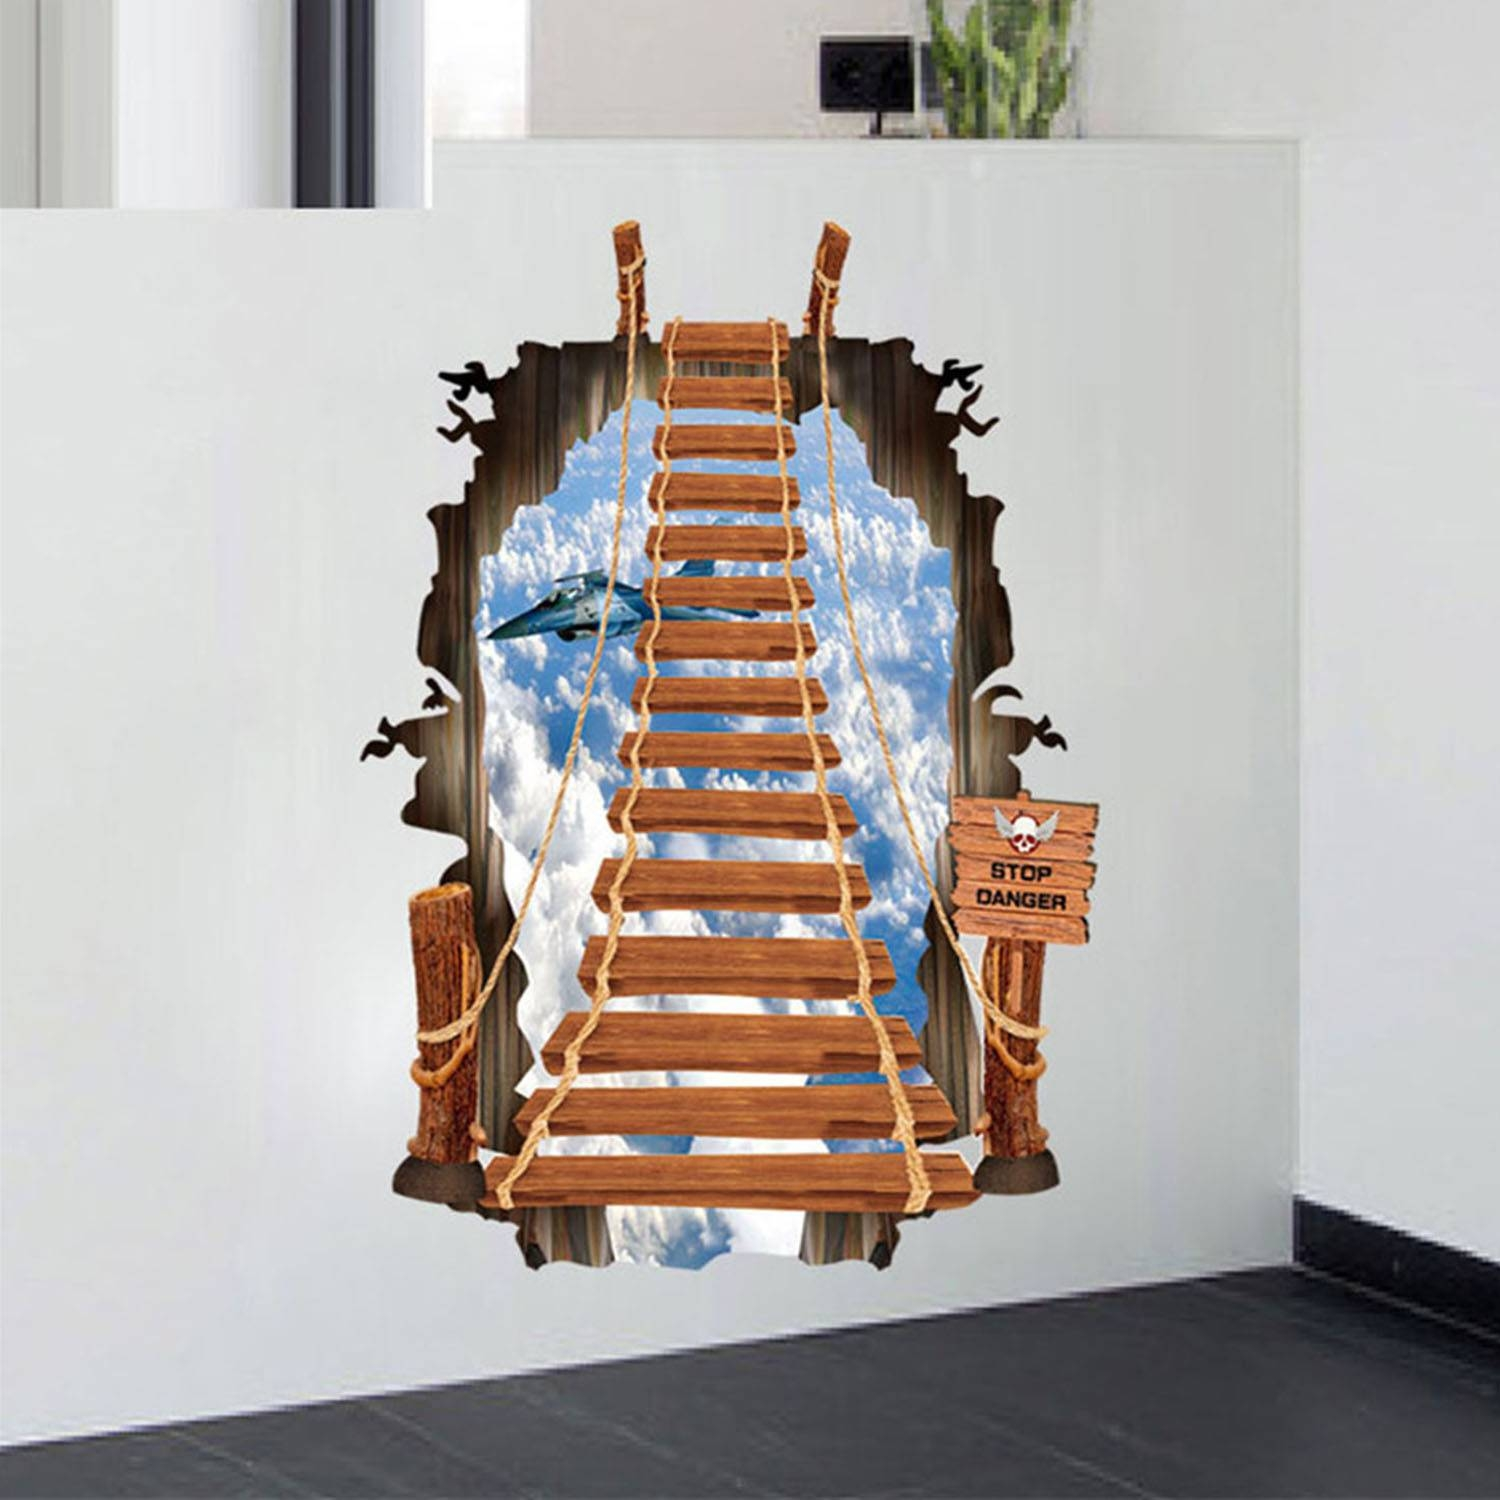 3d Wall Stickers Ladder Style Diy Wall Decals For Home Drawing Within Most Up To Date Minecraft 3d Wall Art (View 13 of 20)